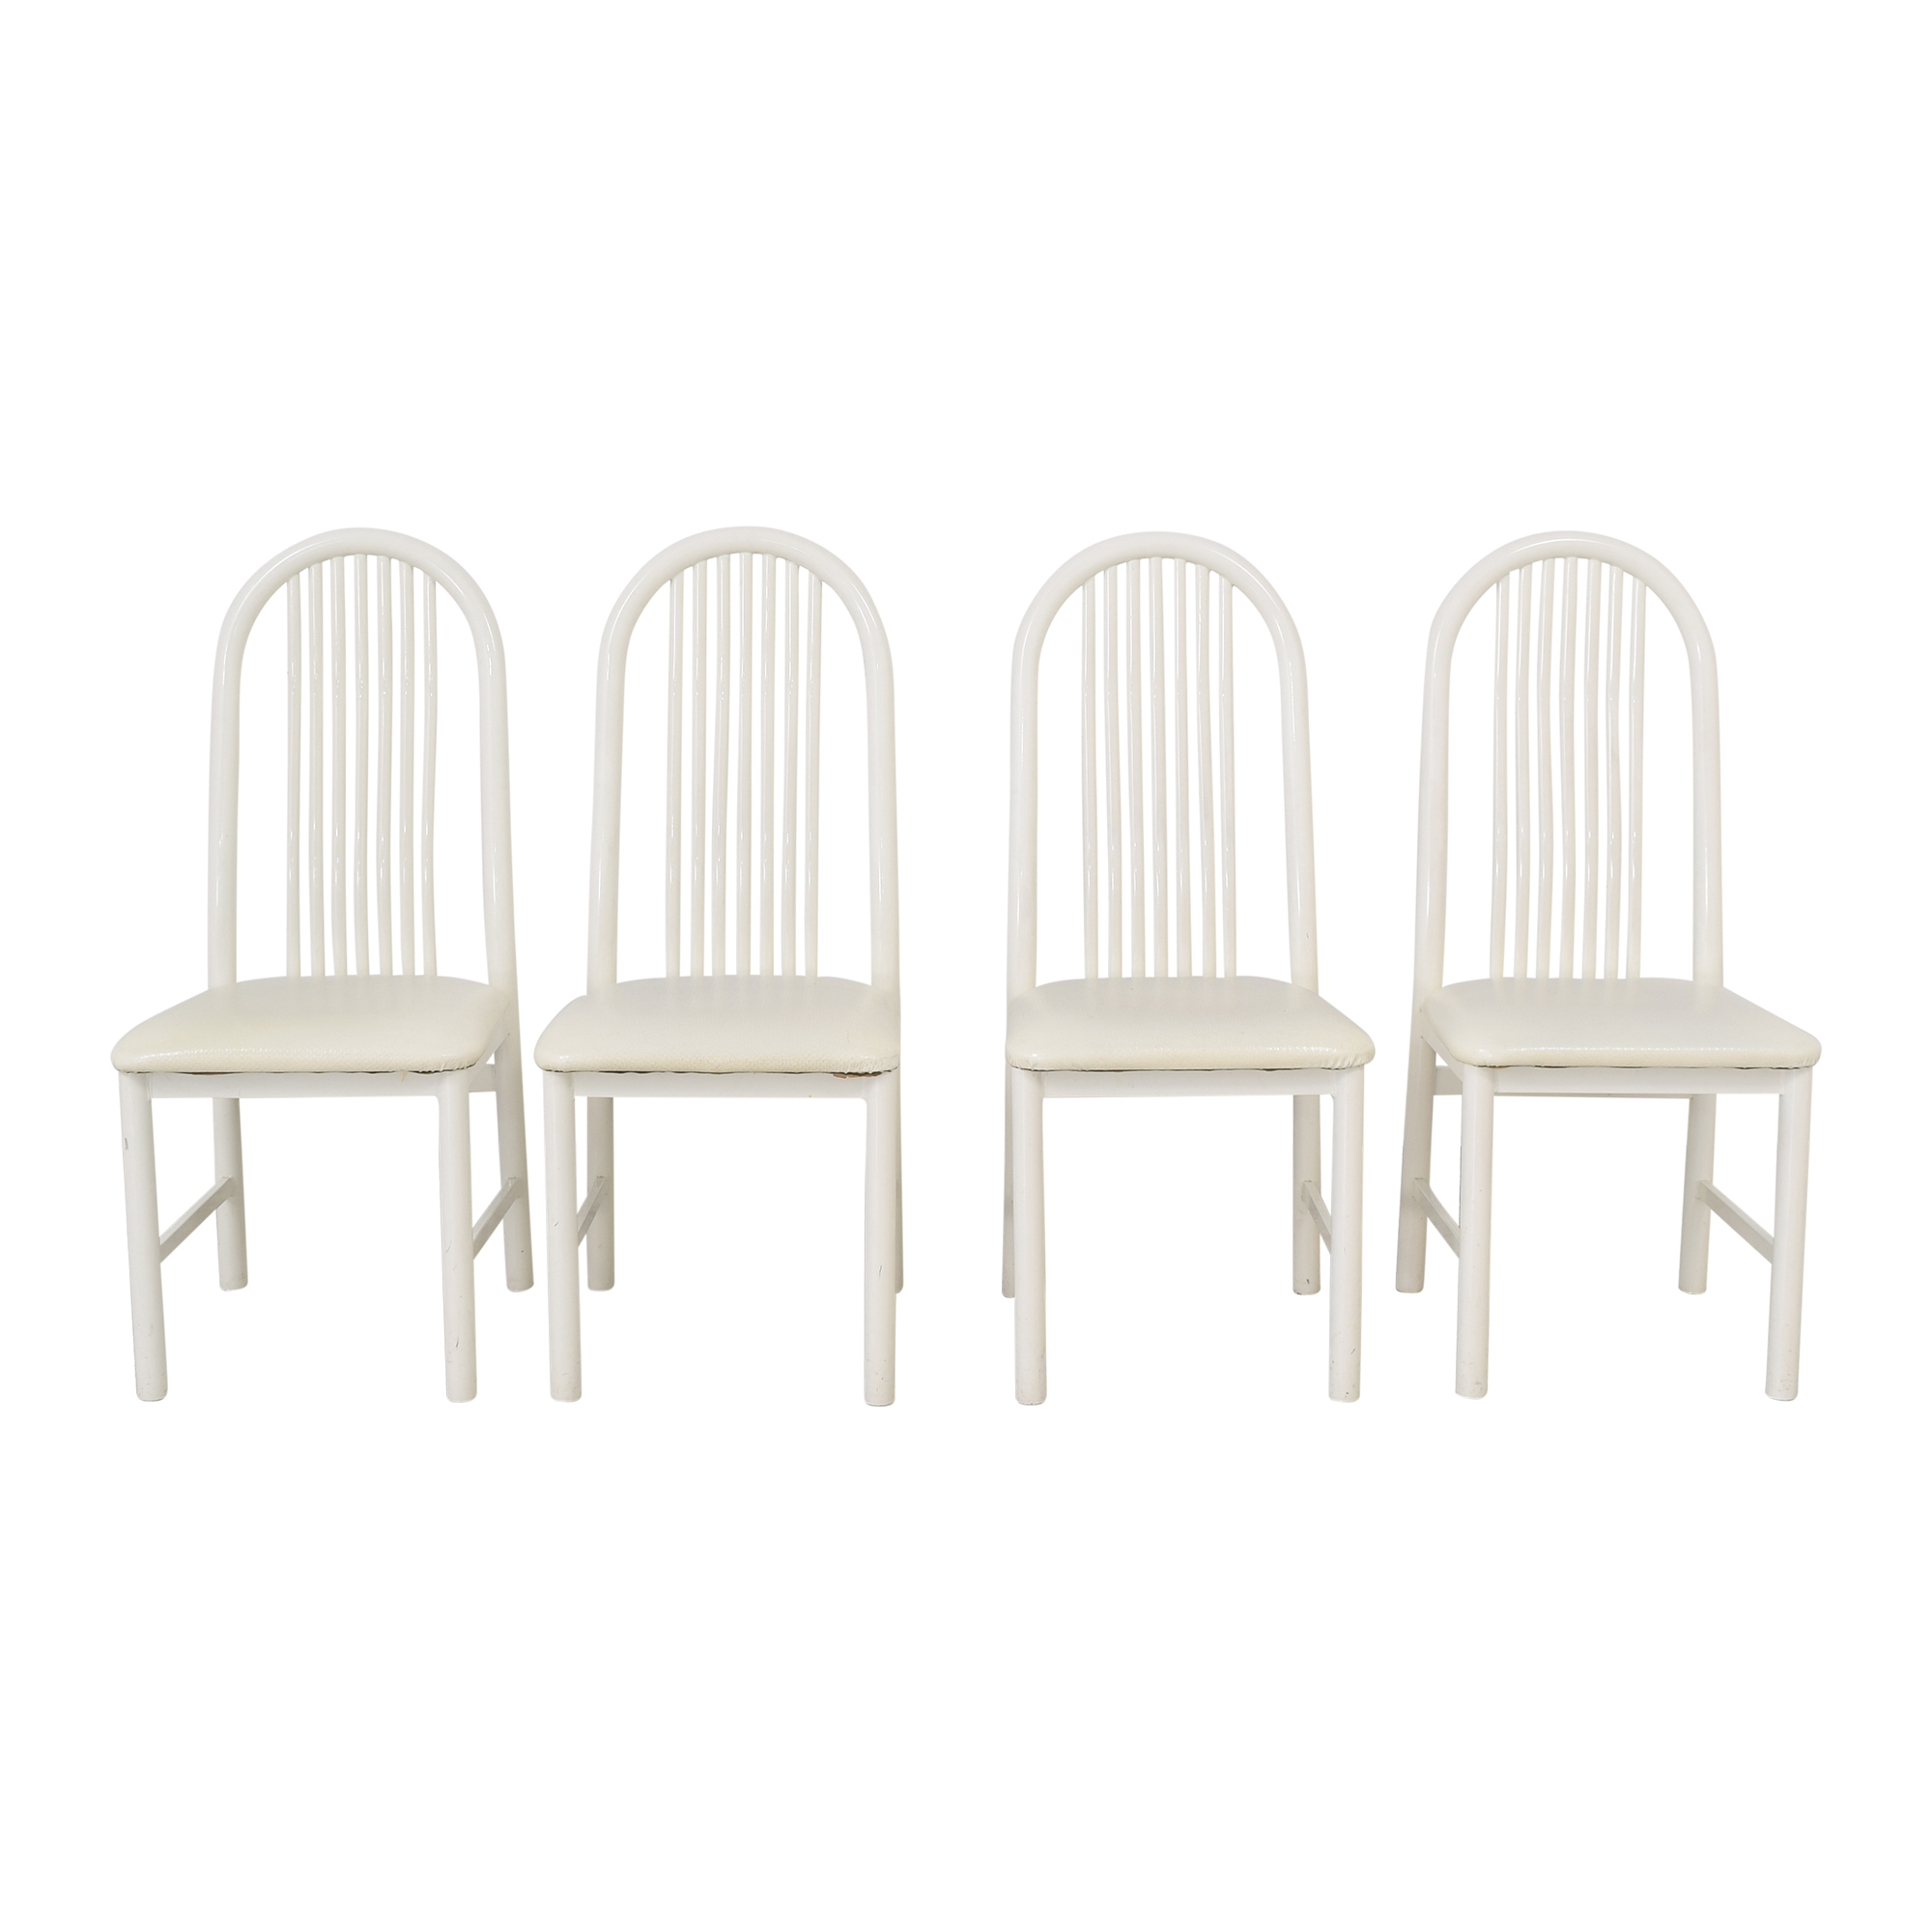 Arch Back Dining Chairs price